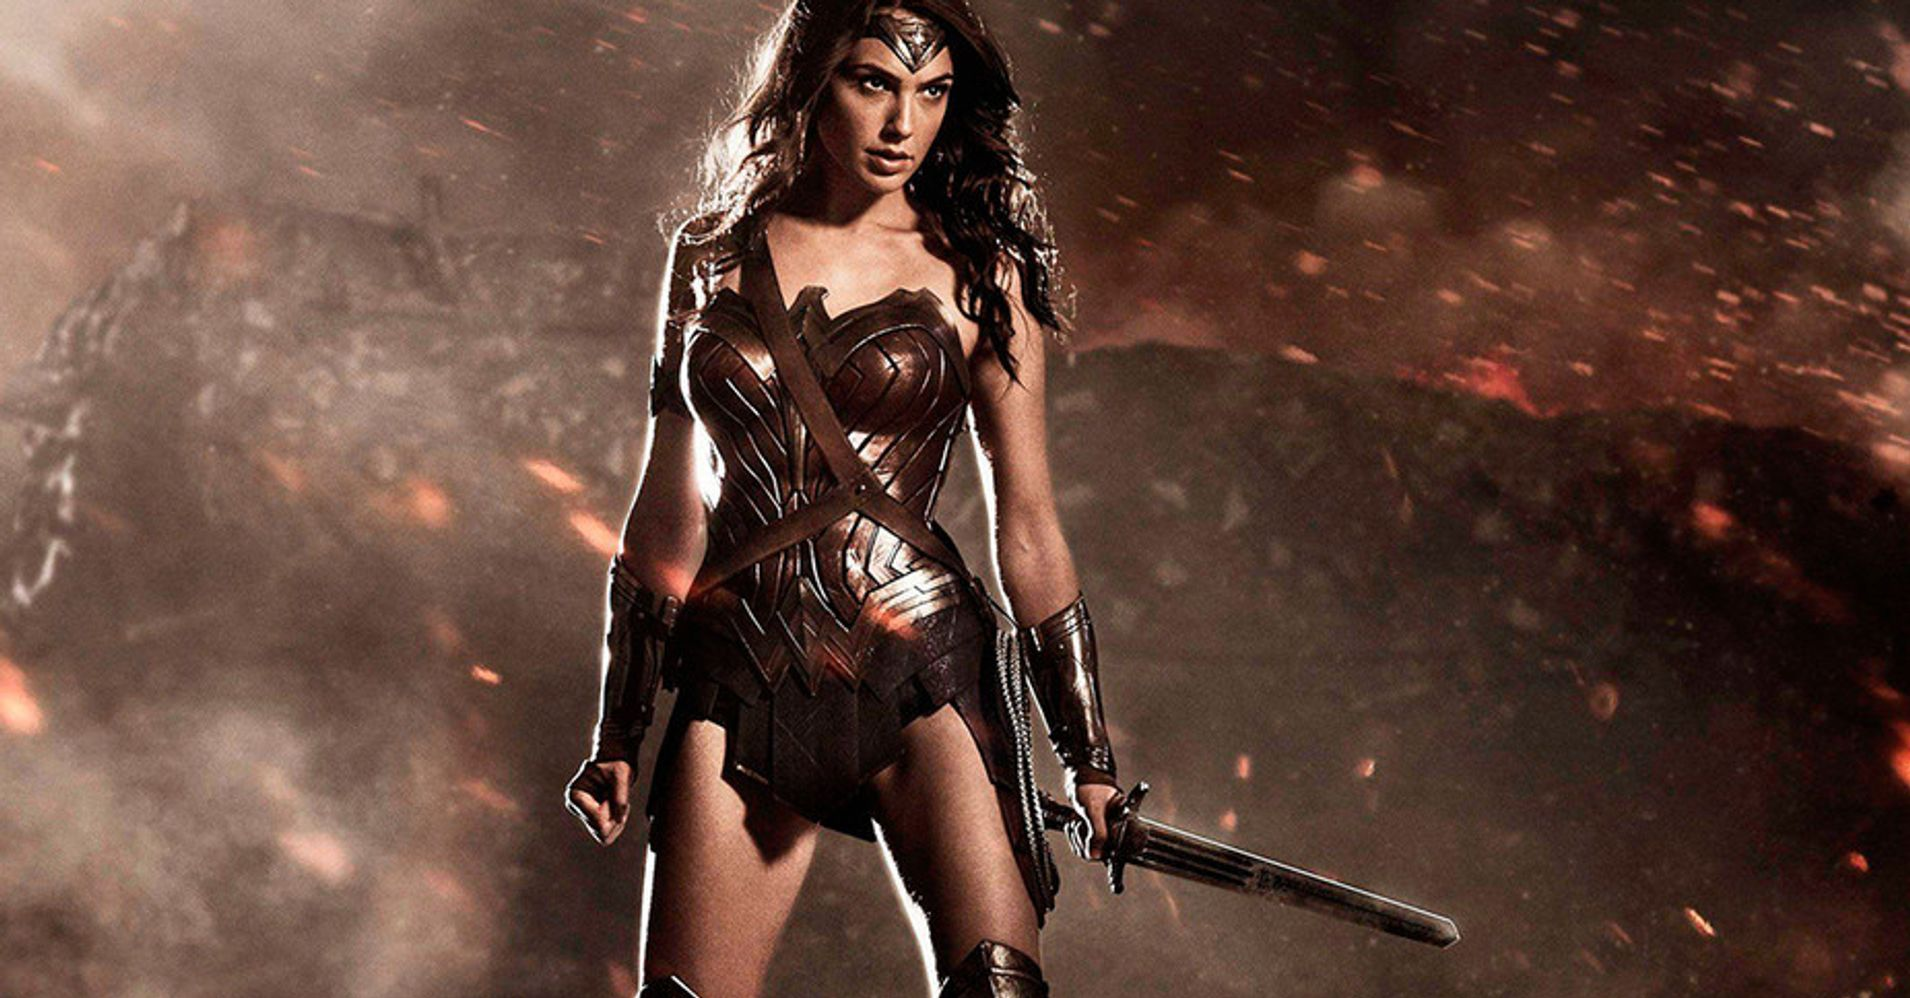 Selling Sex: Wonder Woman And The Ancient Fantasy Of Hot Lady Warriors |  HuffPost